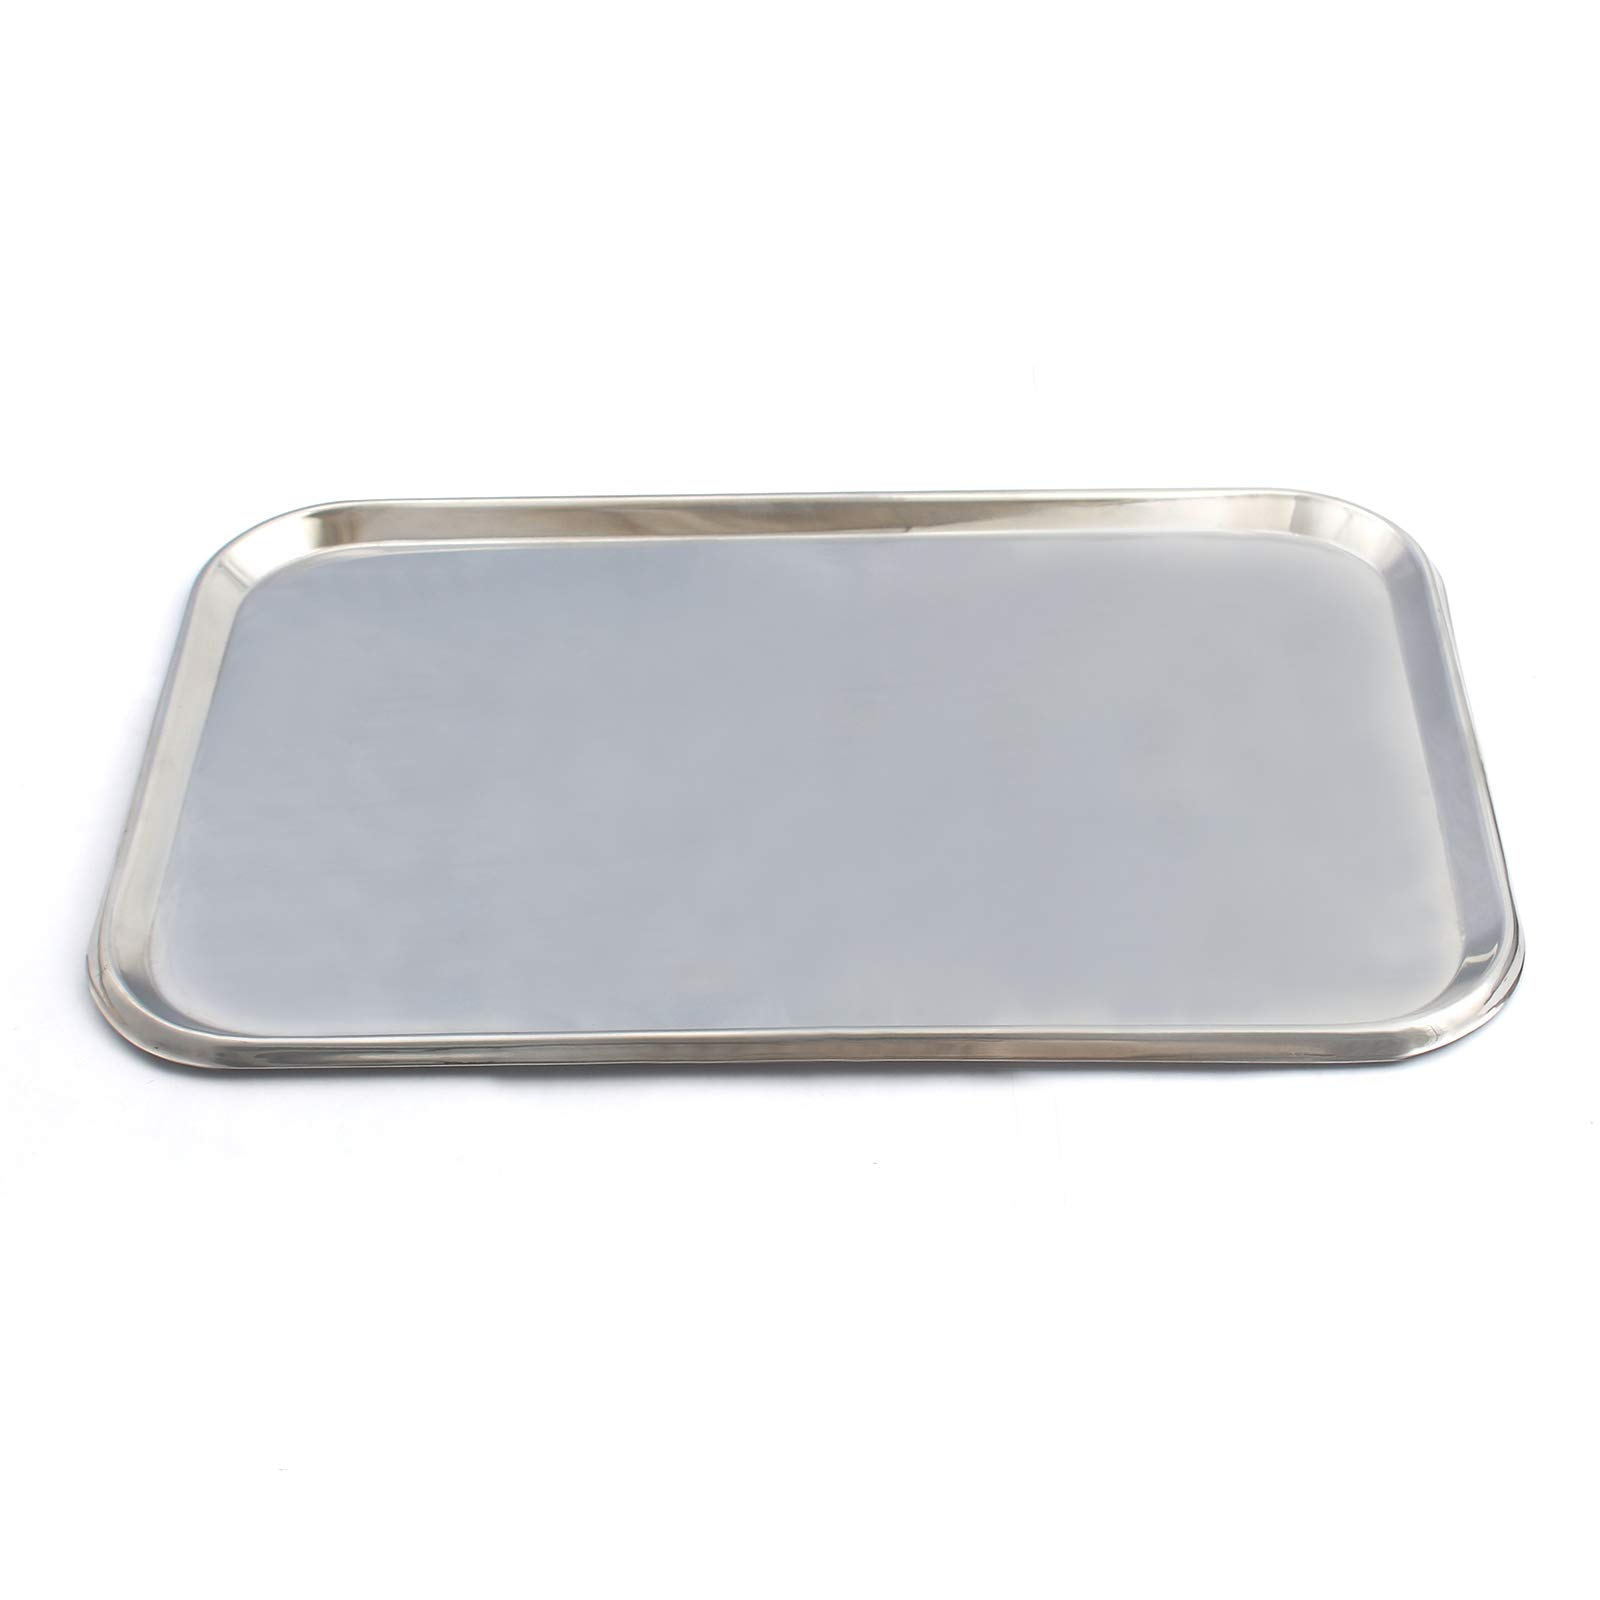 LAJA IMPORTS Flat Type Instrument Tray, Stainless Steel, 19'' X 12-1/2'' X 5/8'' by LAJA IMPORTS